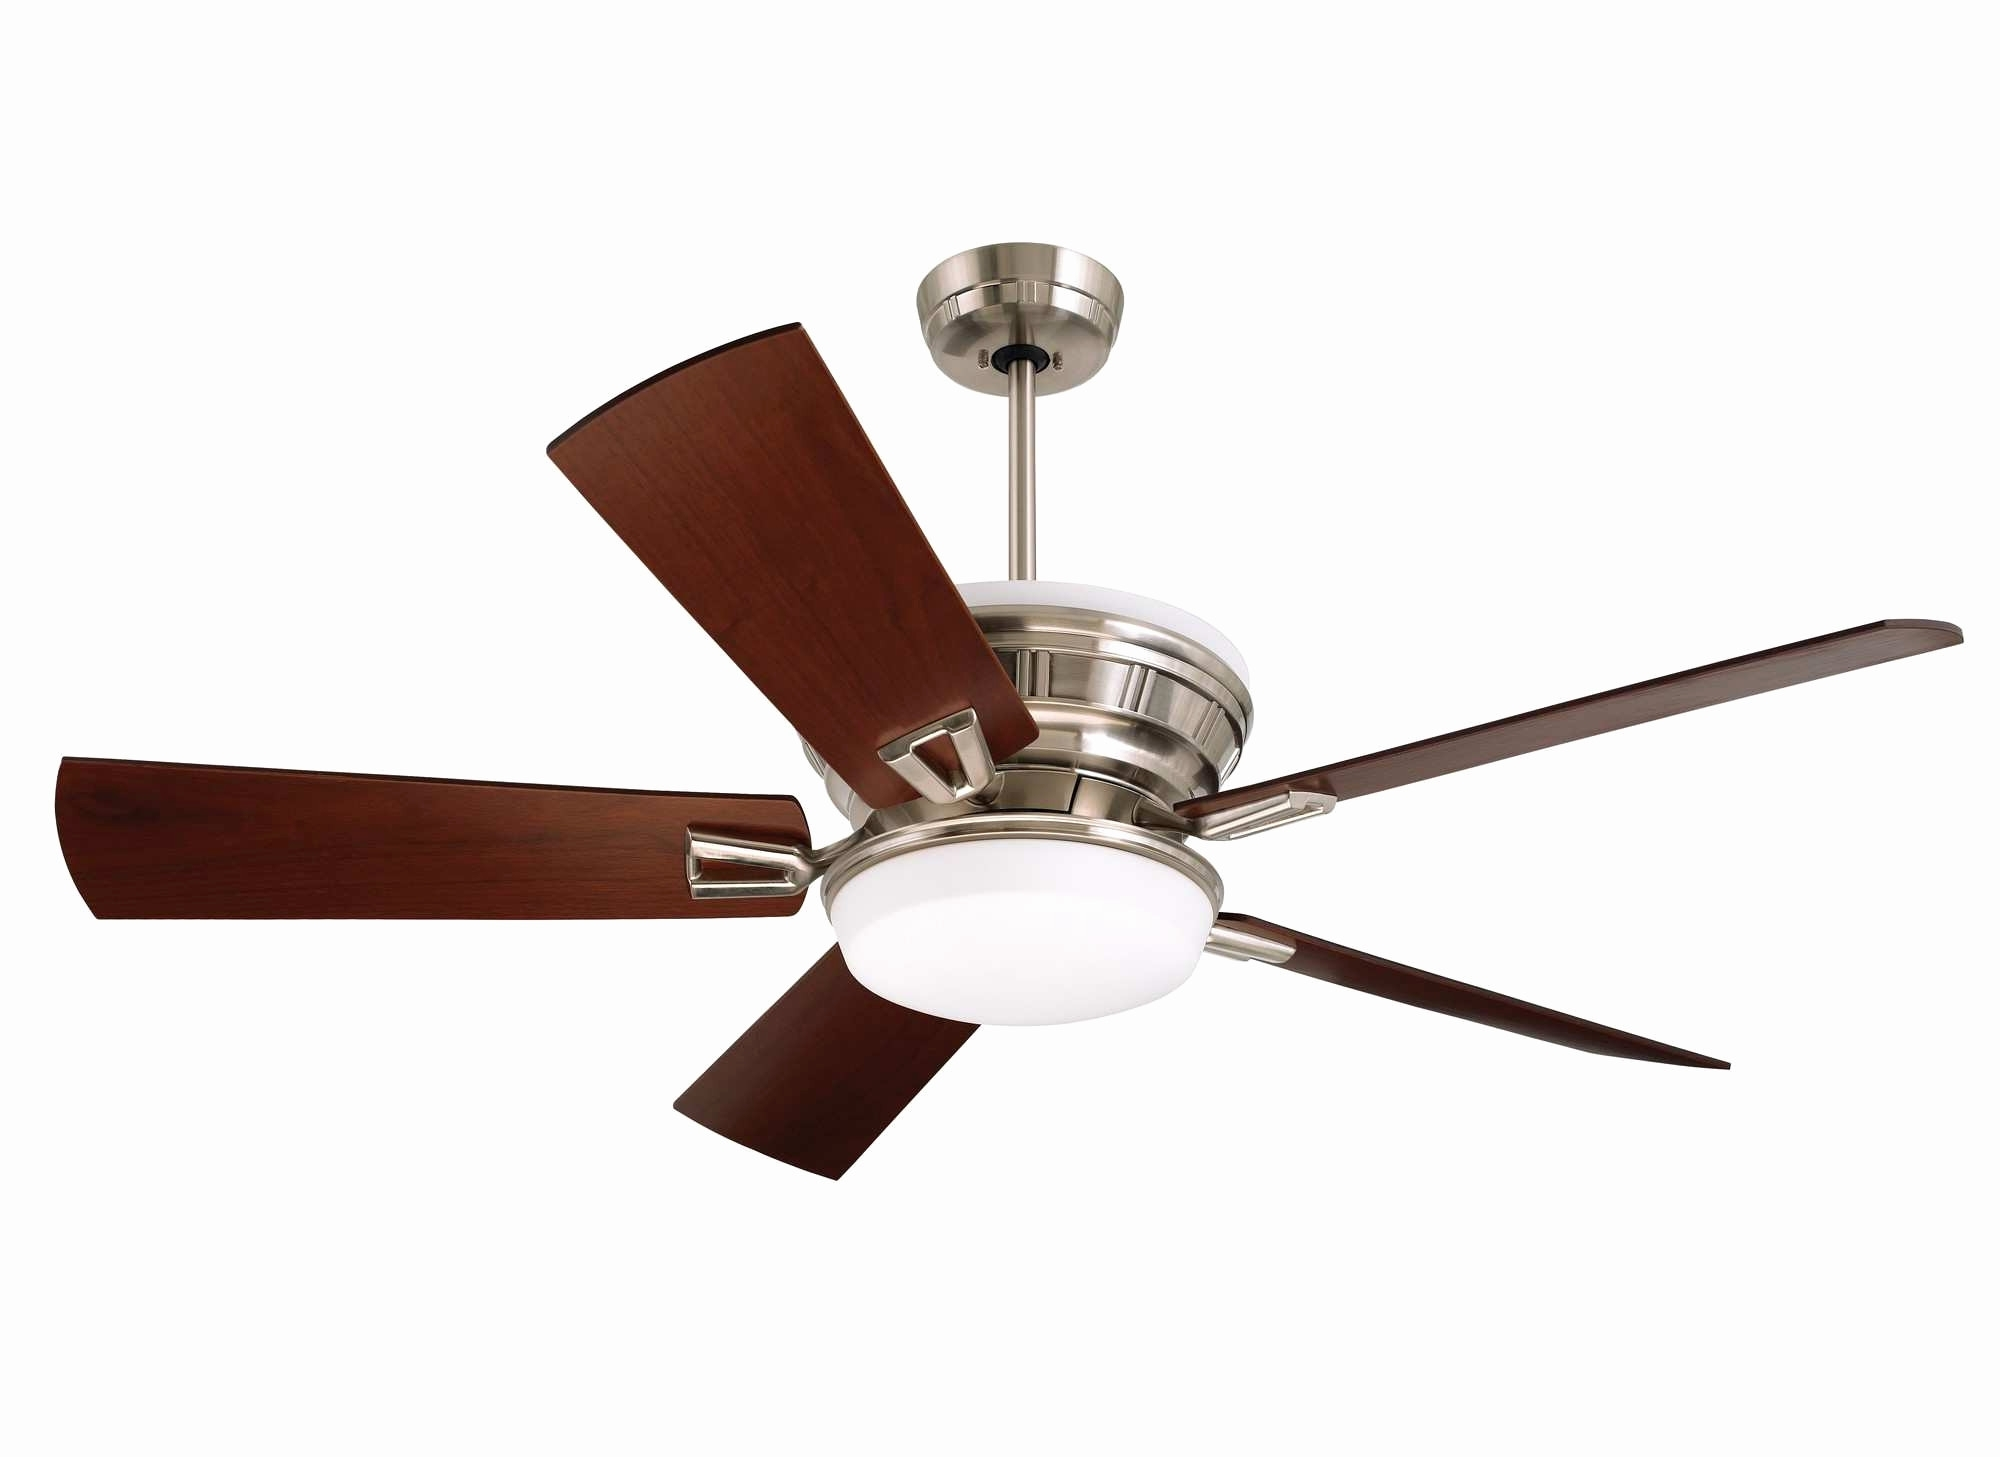 Famous Best Energy Star Ceiling Fans Luxury Home Depot Outdoor Ceiling Fans Inside Energy Star Outdoor Ceiling Fans With Light (View 8 of 20)